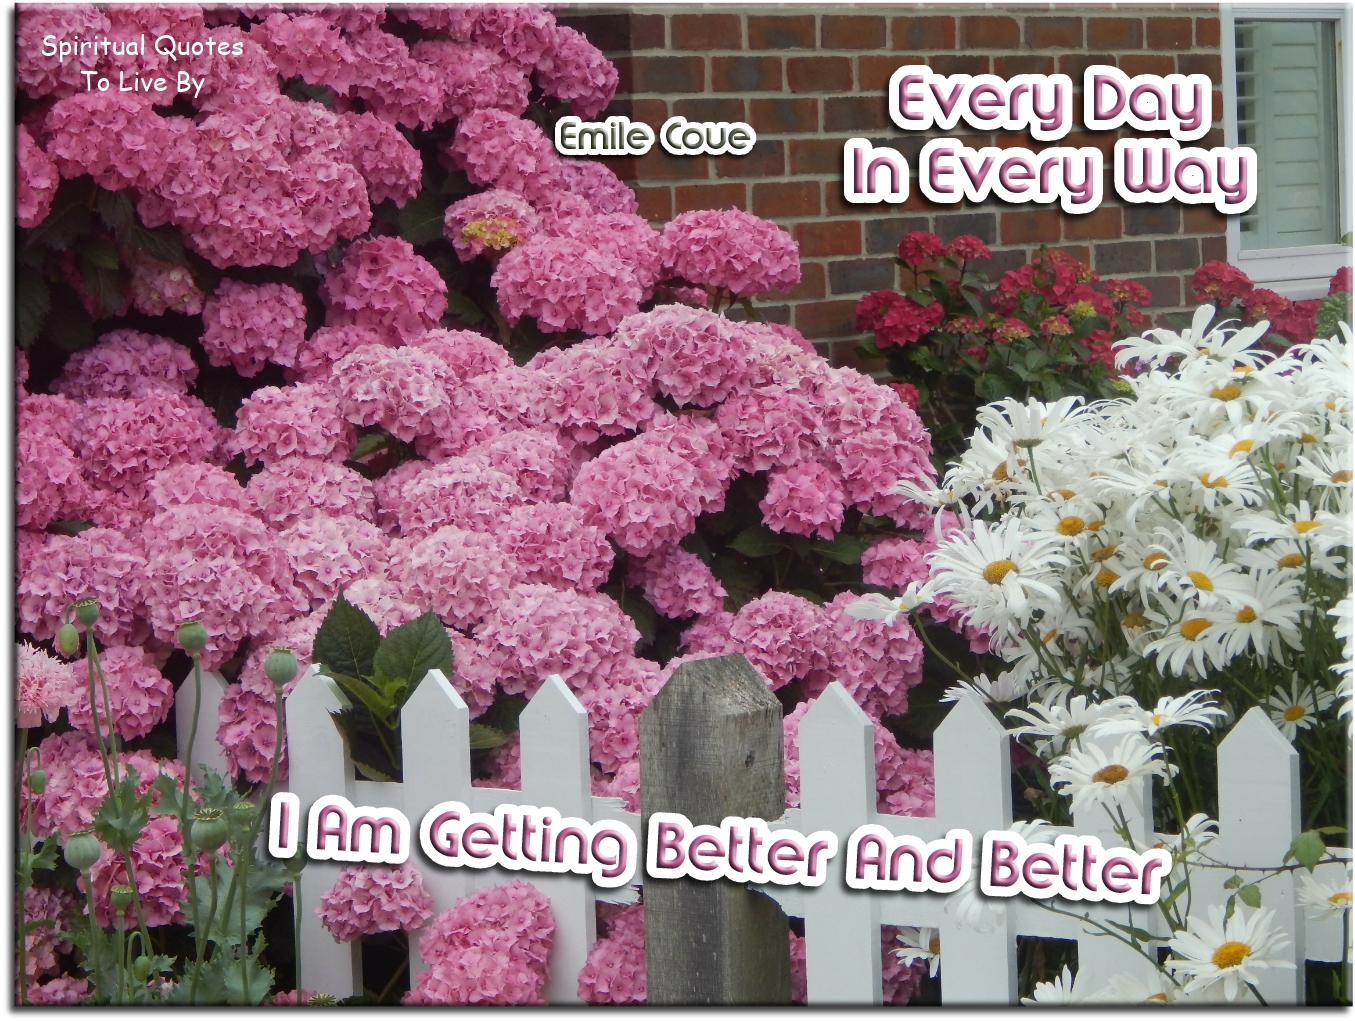 Emile Coue quote: Every day in every way I am getting better and better. - Spiritual Quotes To Live By